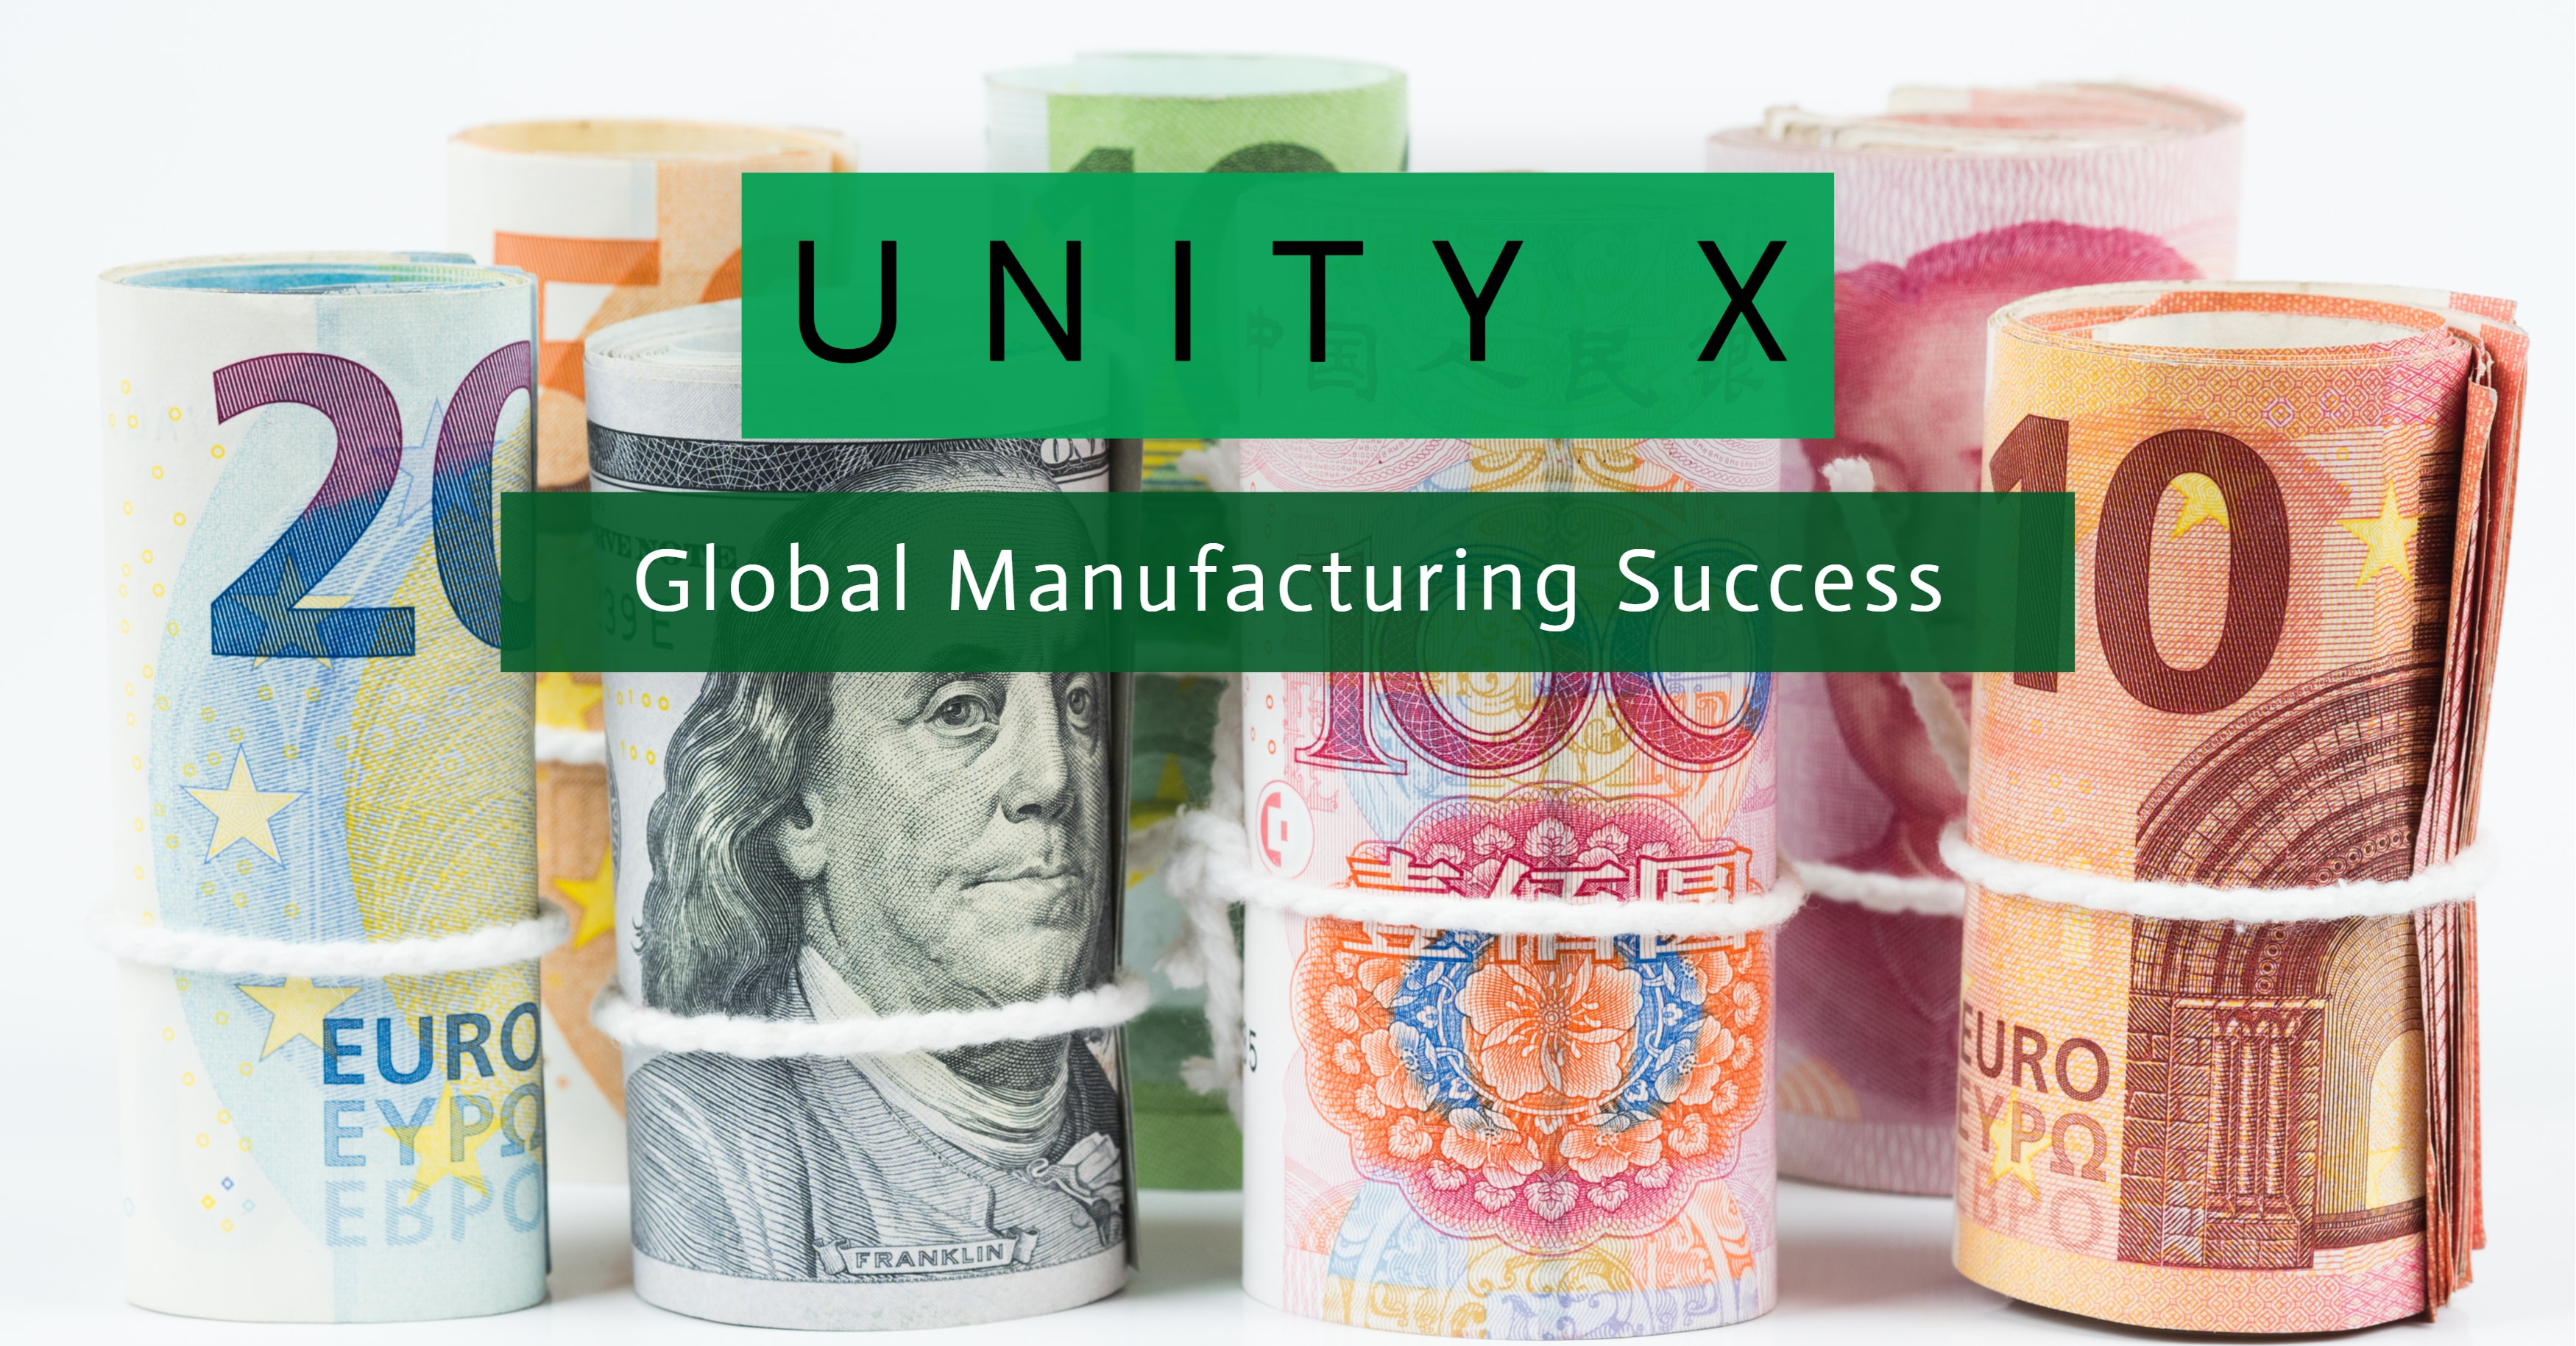 Unity X Fuels Global Manufacturing Success